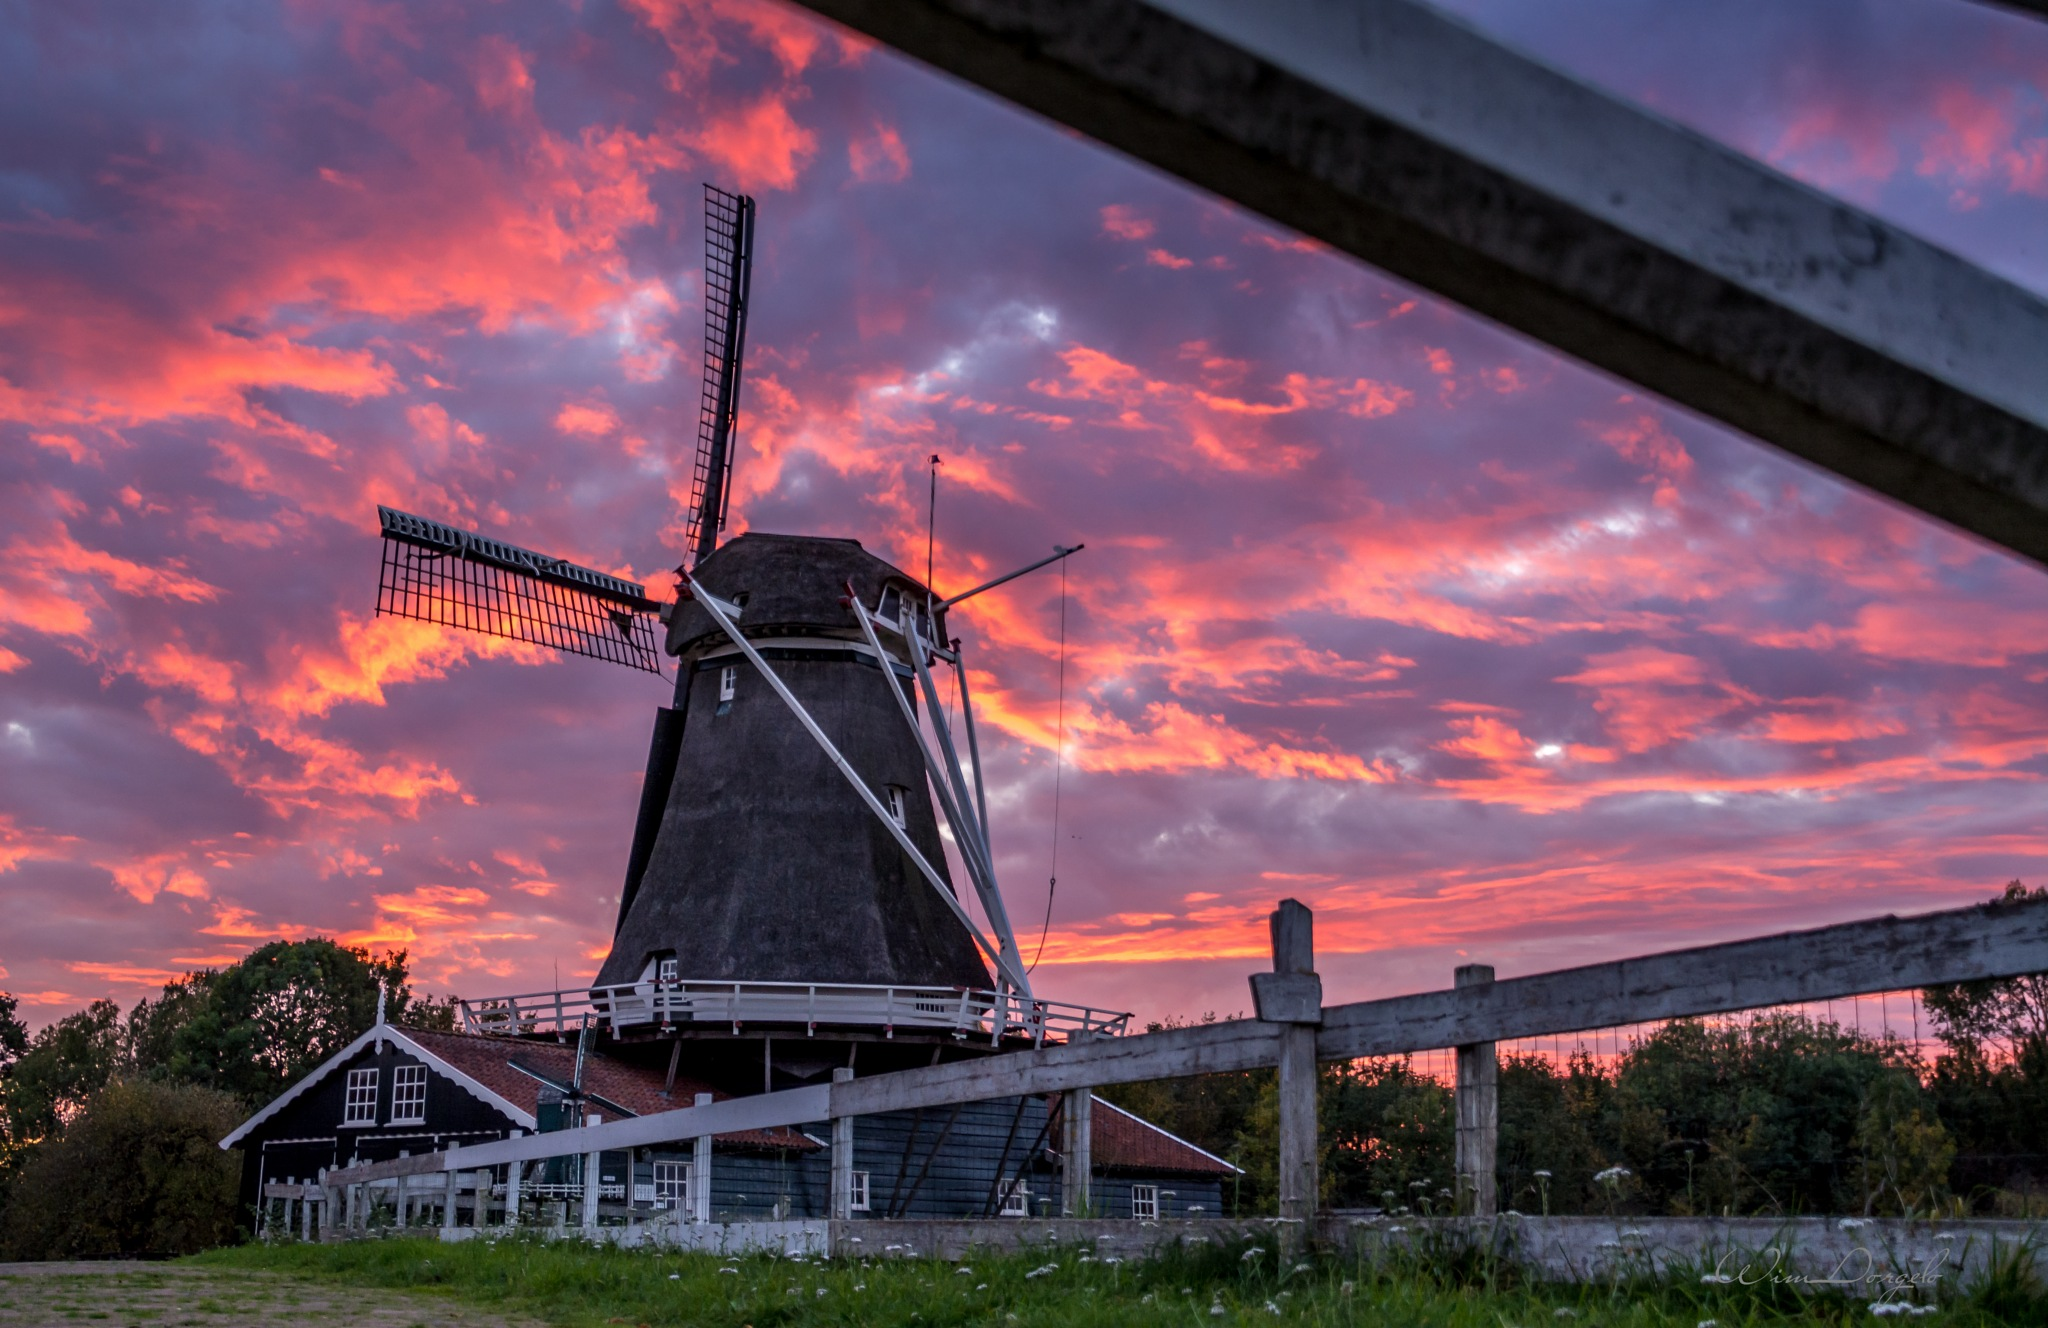 Sunset at Deventer by Wim Dorgelo